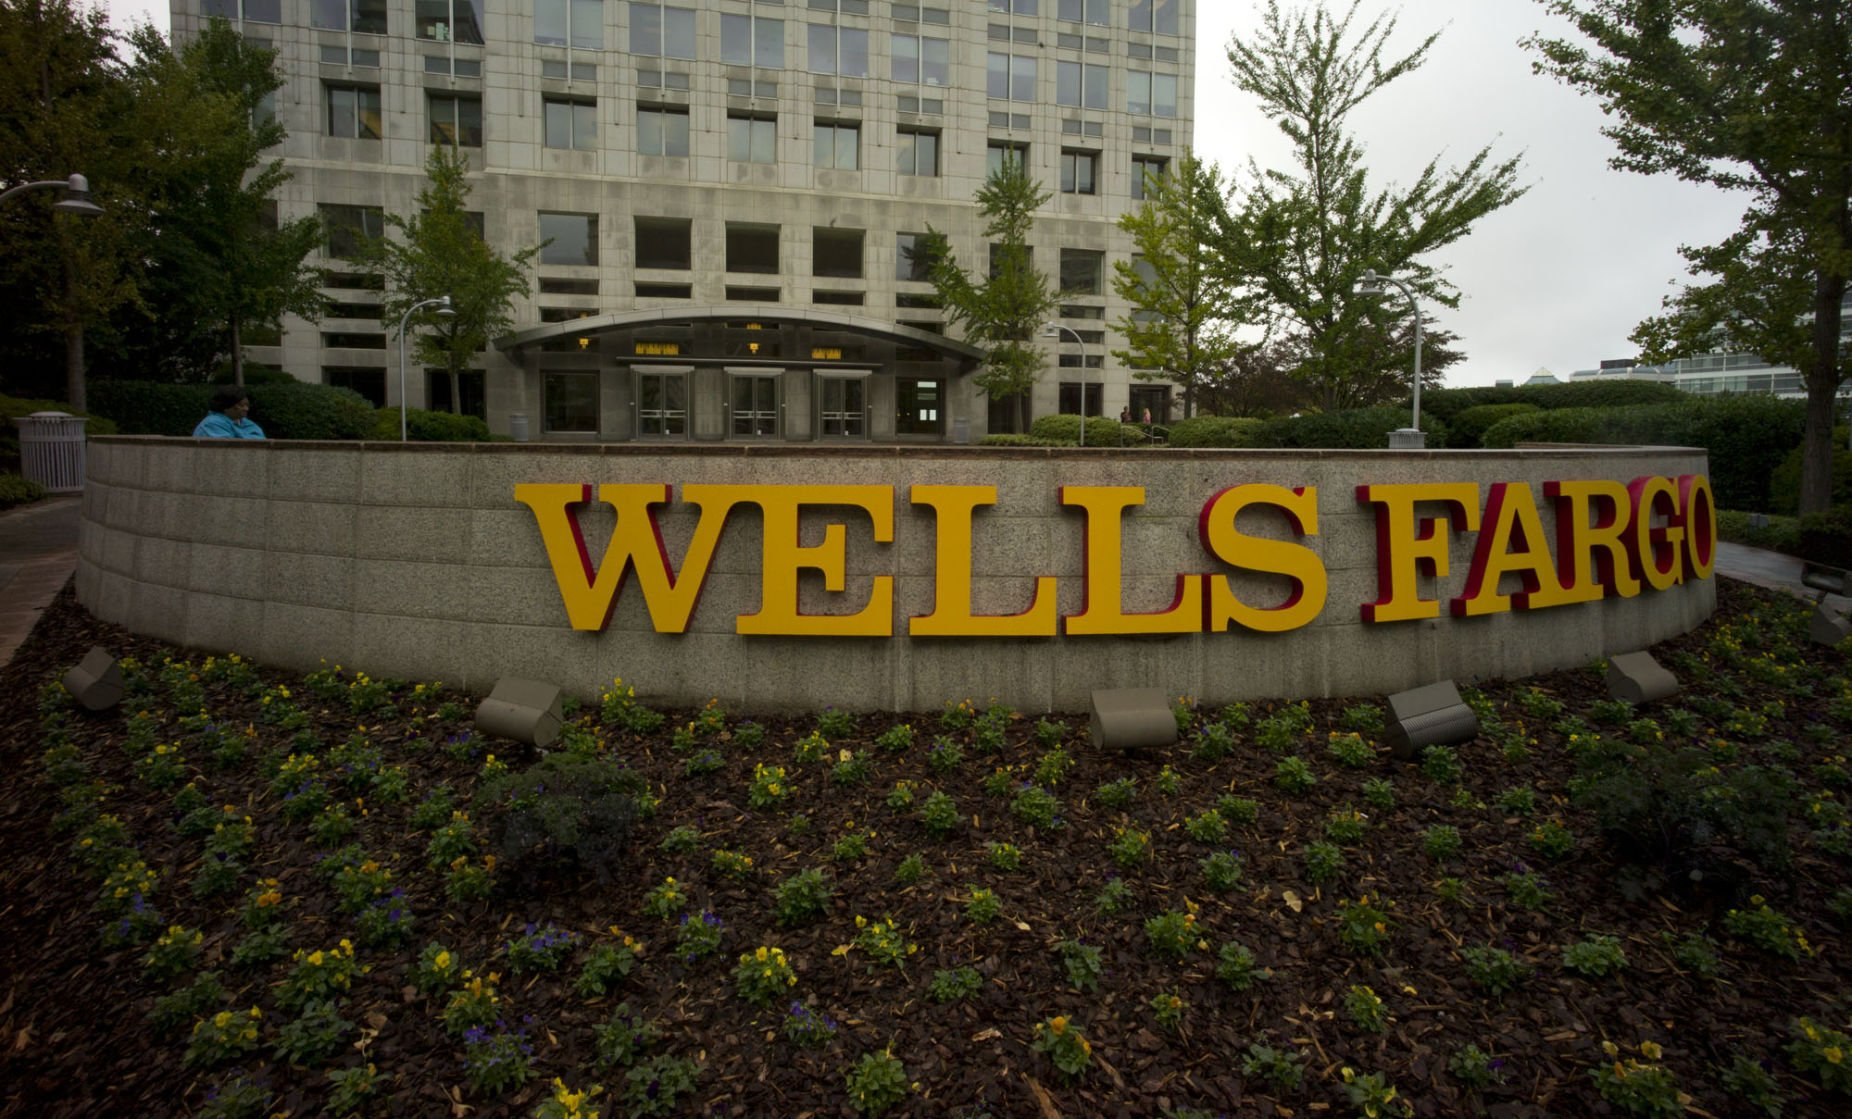 Wells Fargo CEO to testify before Senate banking panel on October 3